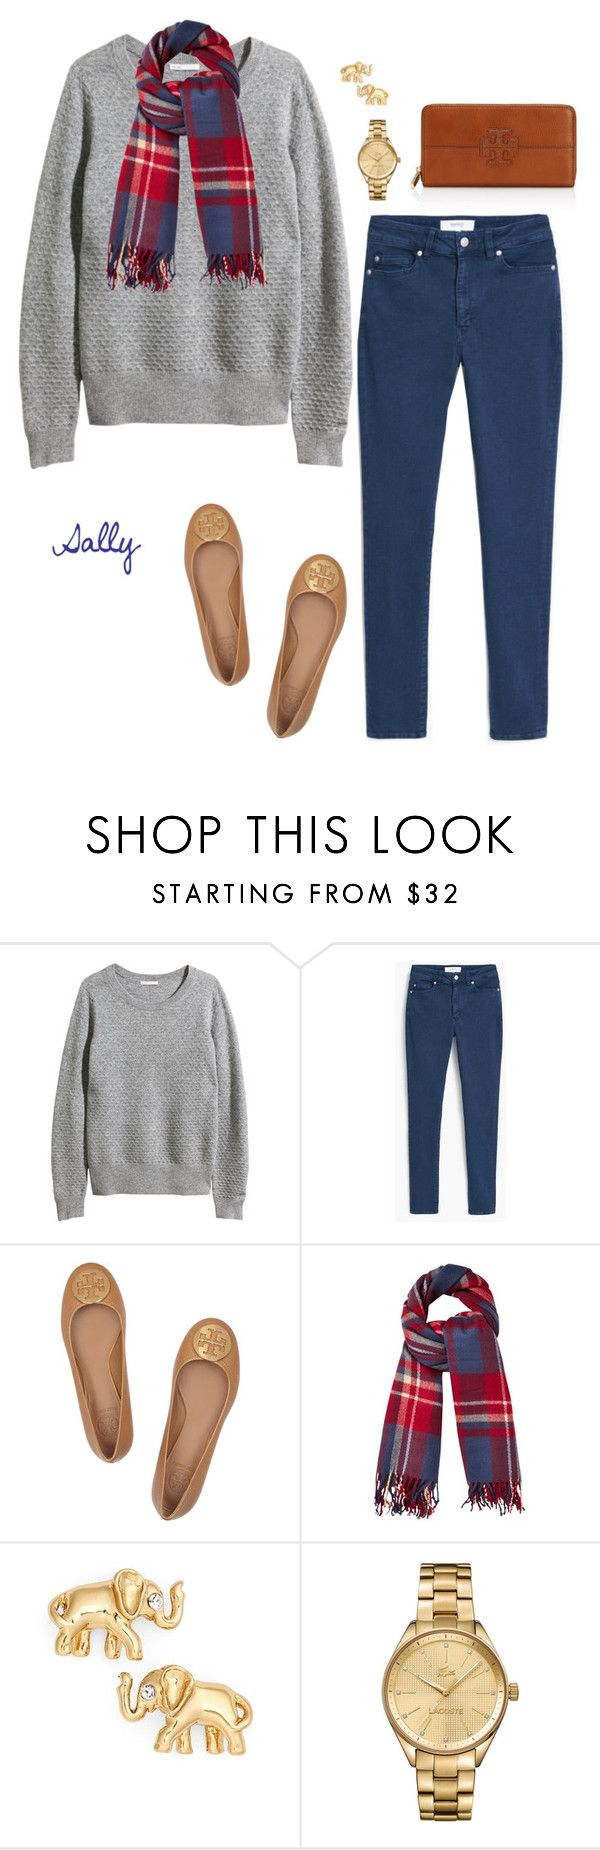 """A Cool Day"" by sc-prep-girl ❤ liked on Polyvore featuring H&M, MANGO, Tory Burch, Phase Eight, Kate Spade and Lacoste"